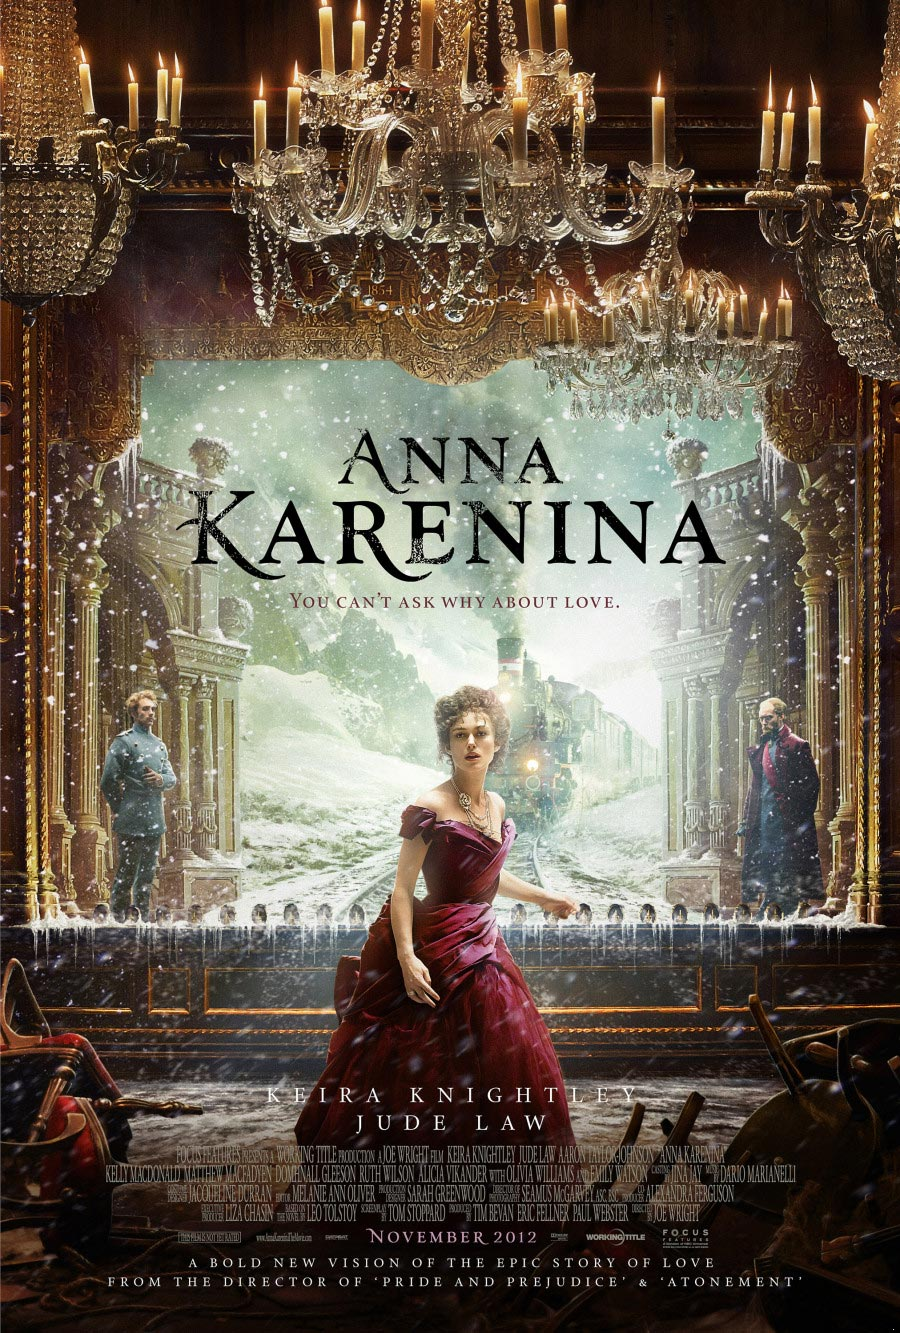 Anna Karenina (2012) by Joe Wright and Tom Stoppard